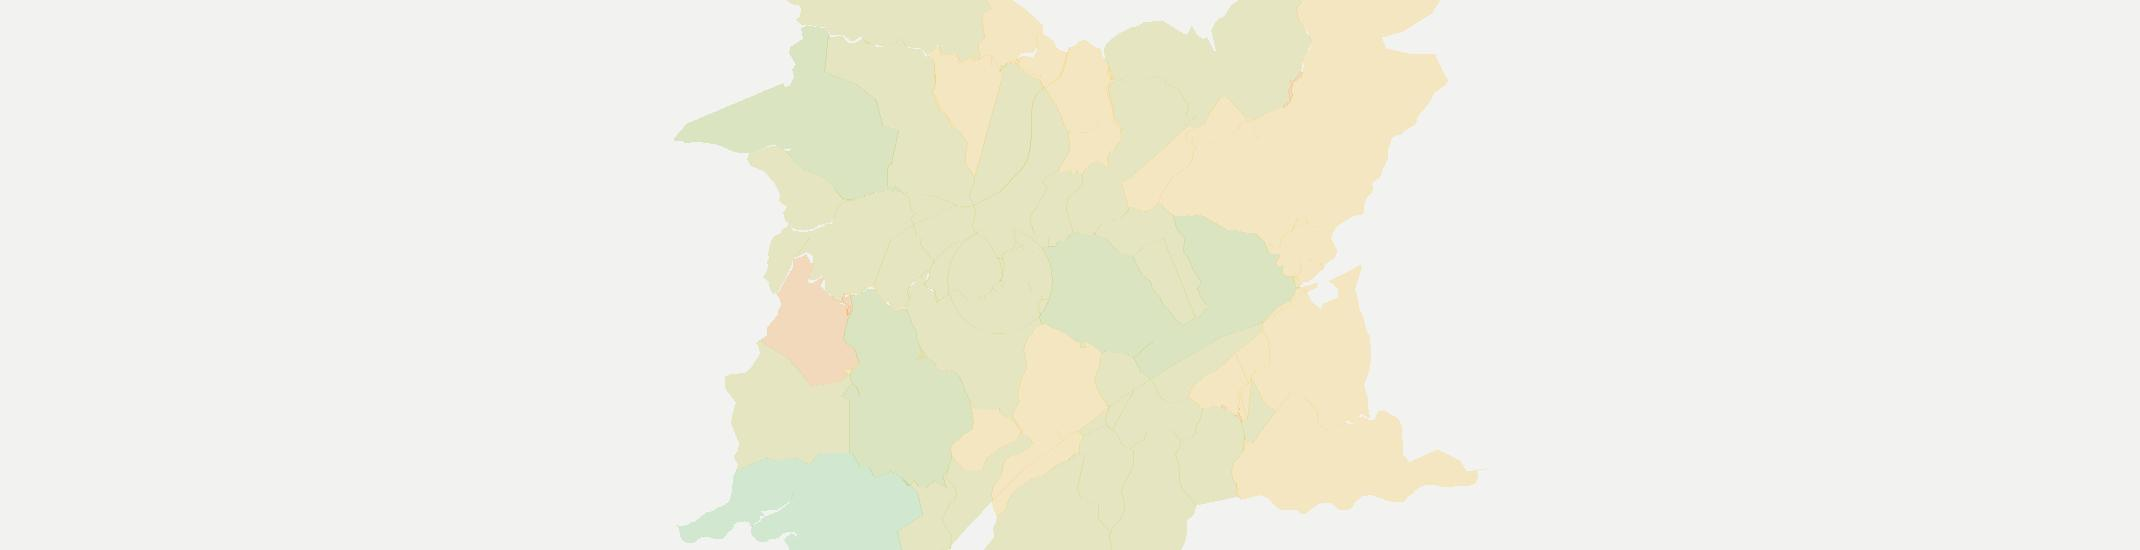 Hindman Internet Competition Map. Click for interactive map.